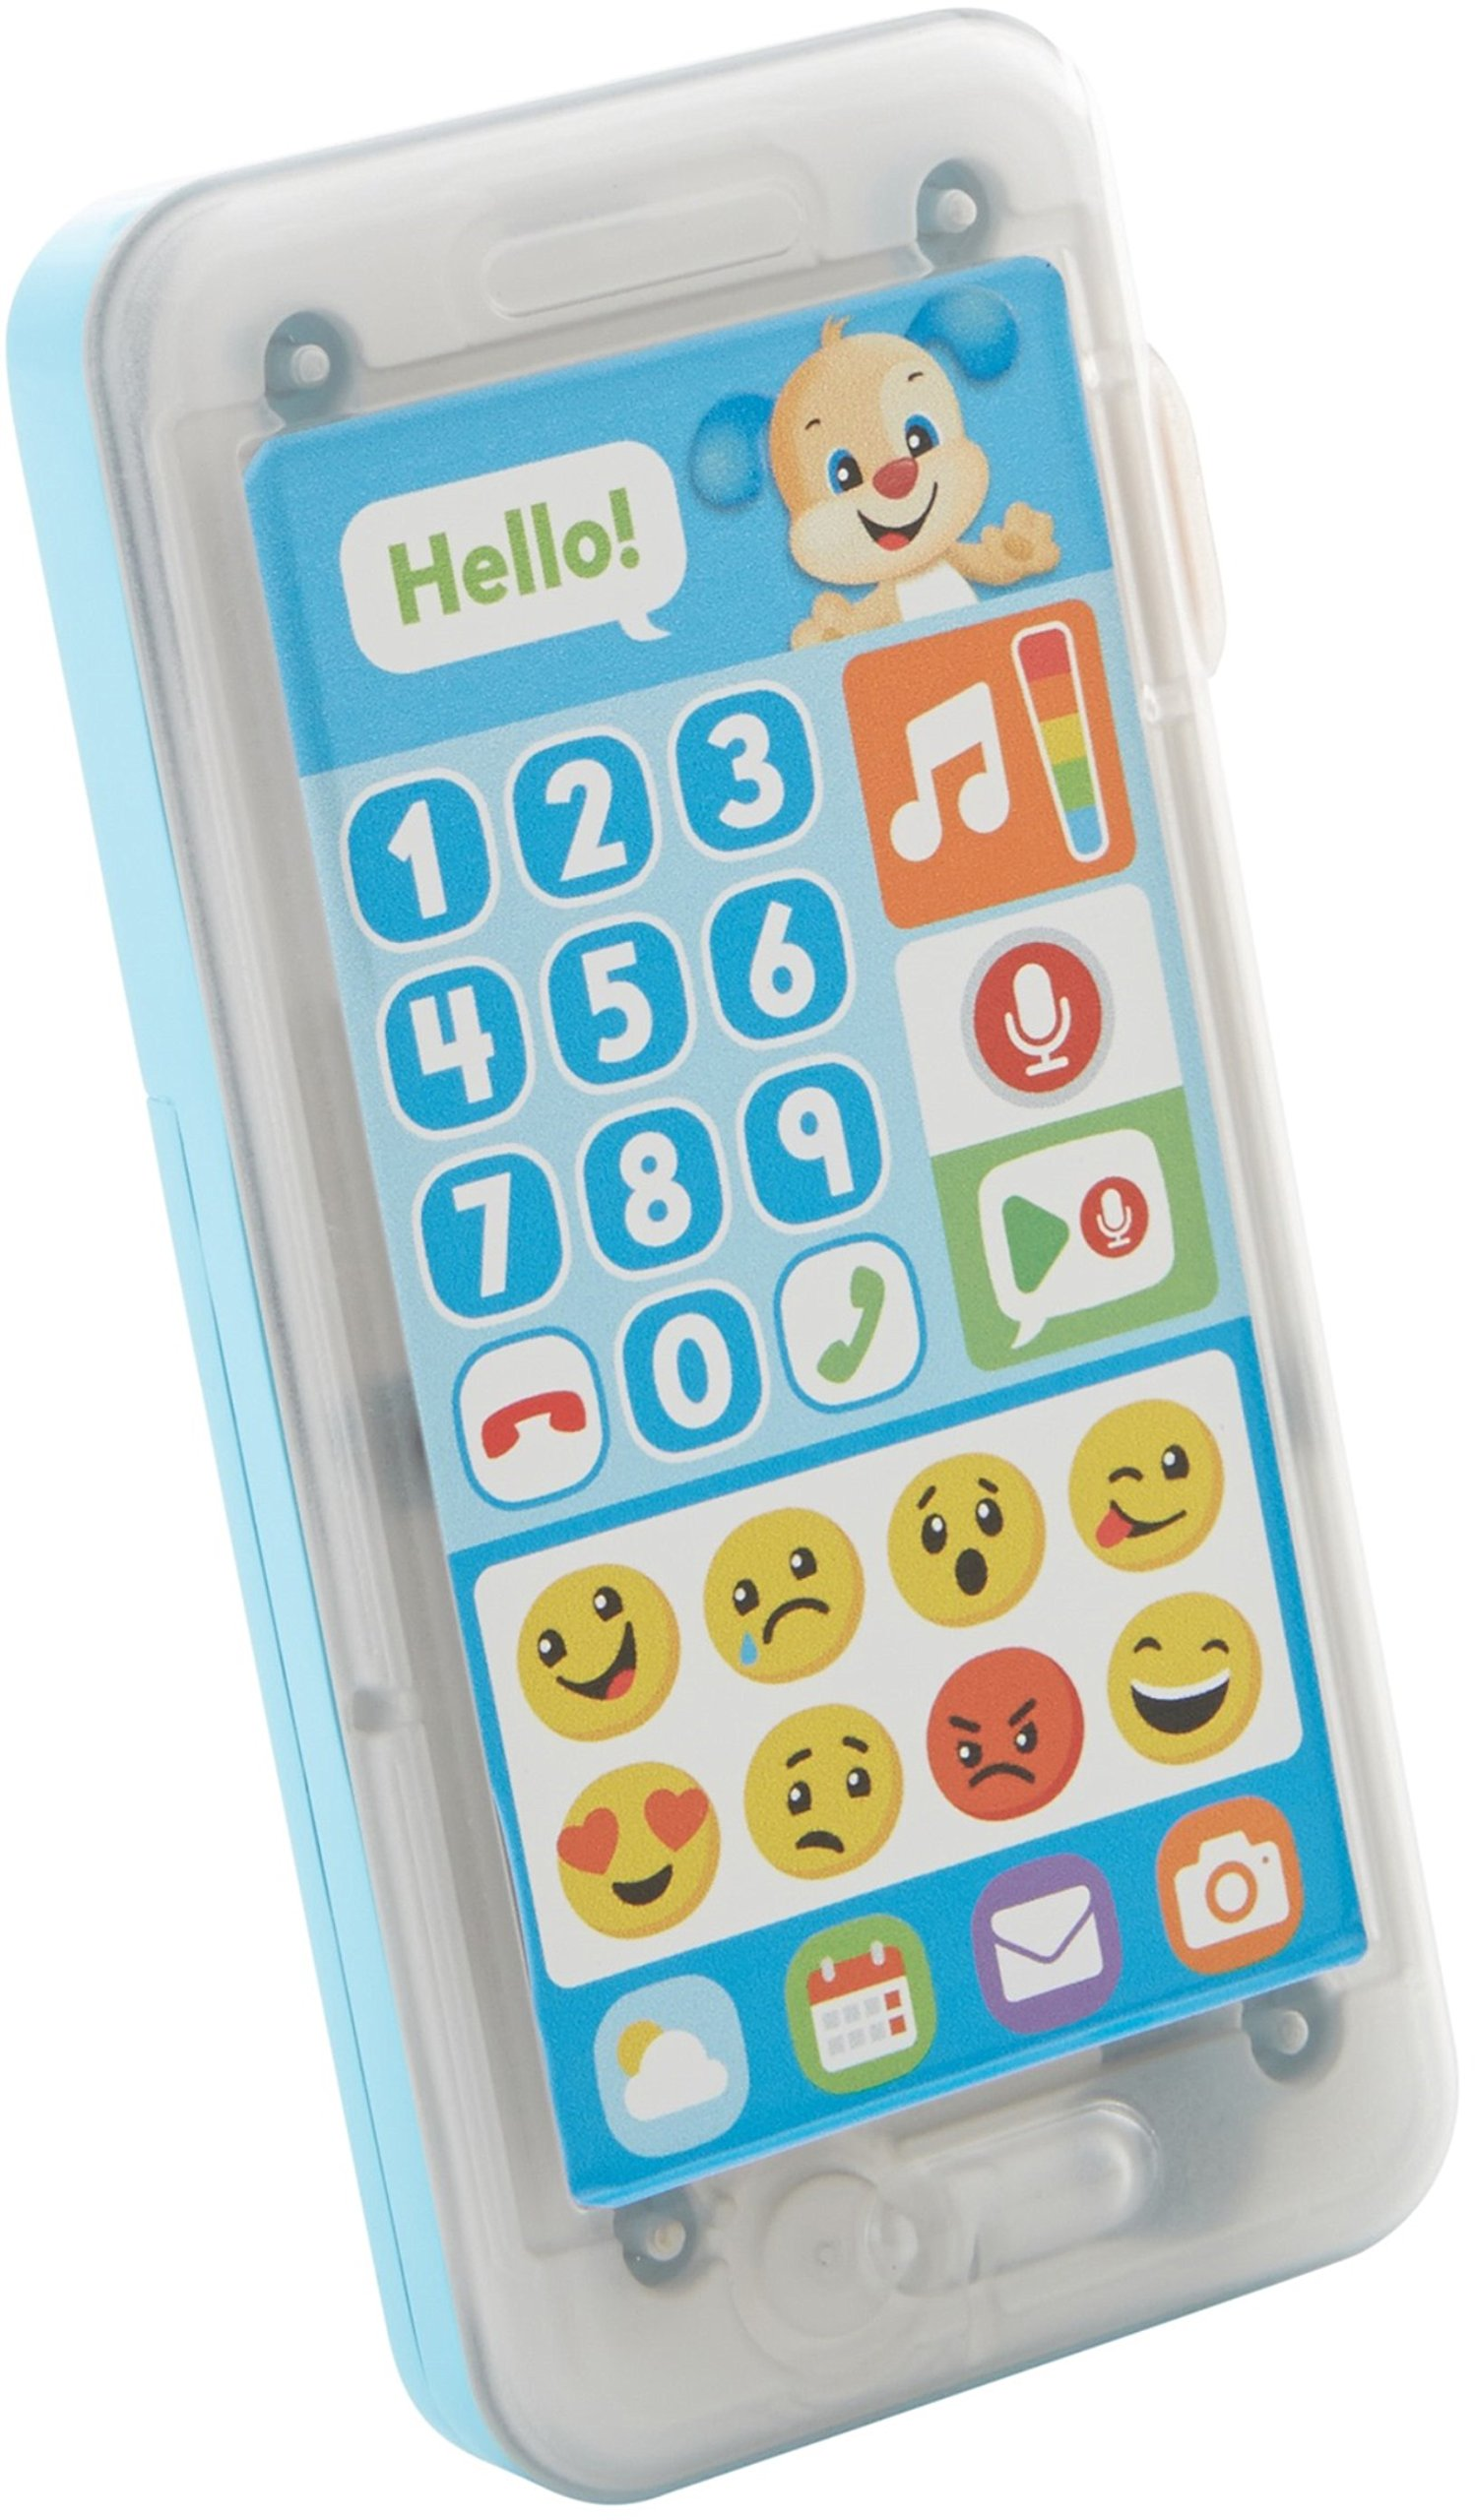 Fisher-Price Laugh & Learn Leave A Message Smart Phone, Puppy by Fisher-Price (Image #1)